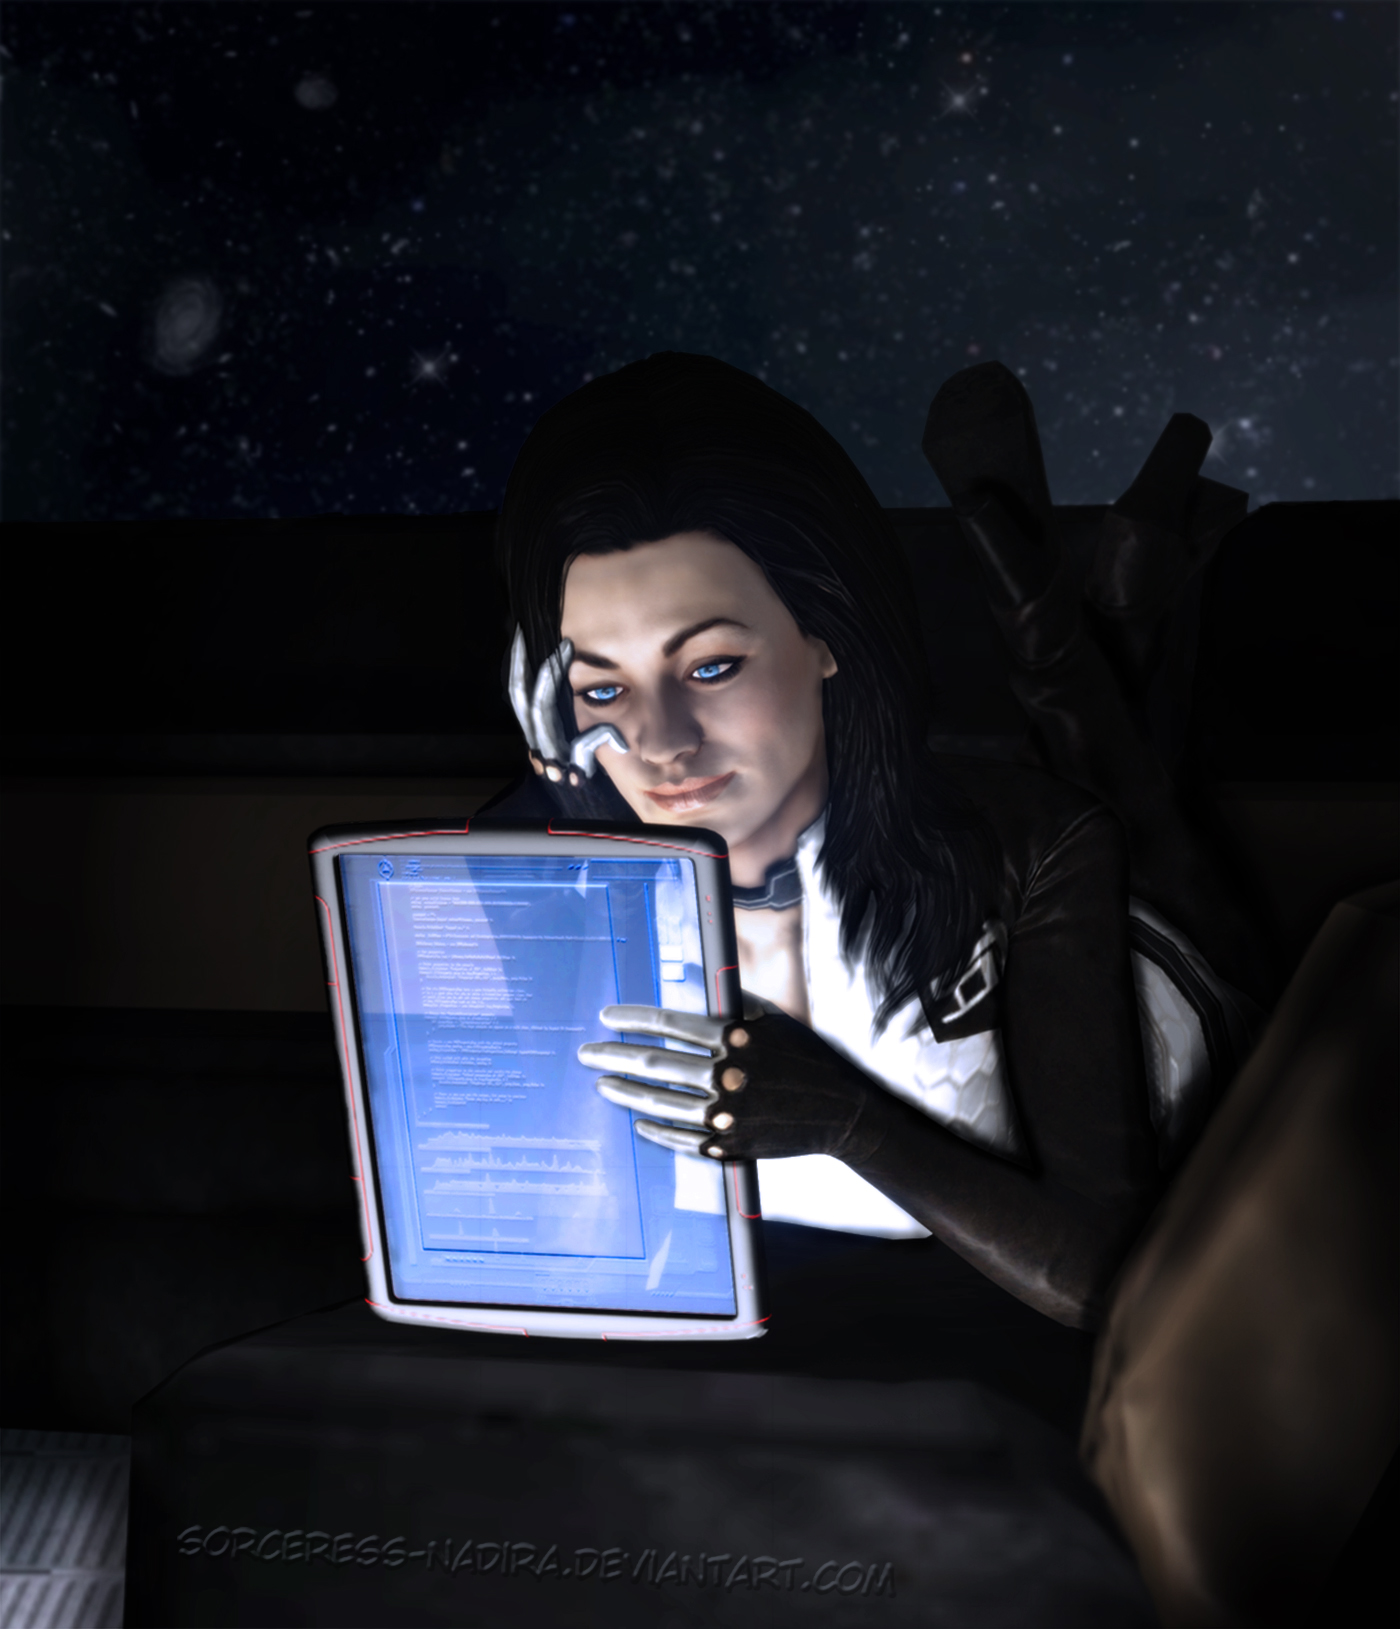 Midnight lecture by Sorceress-Nadira